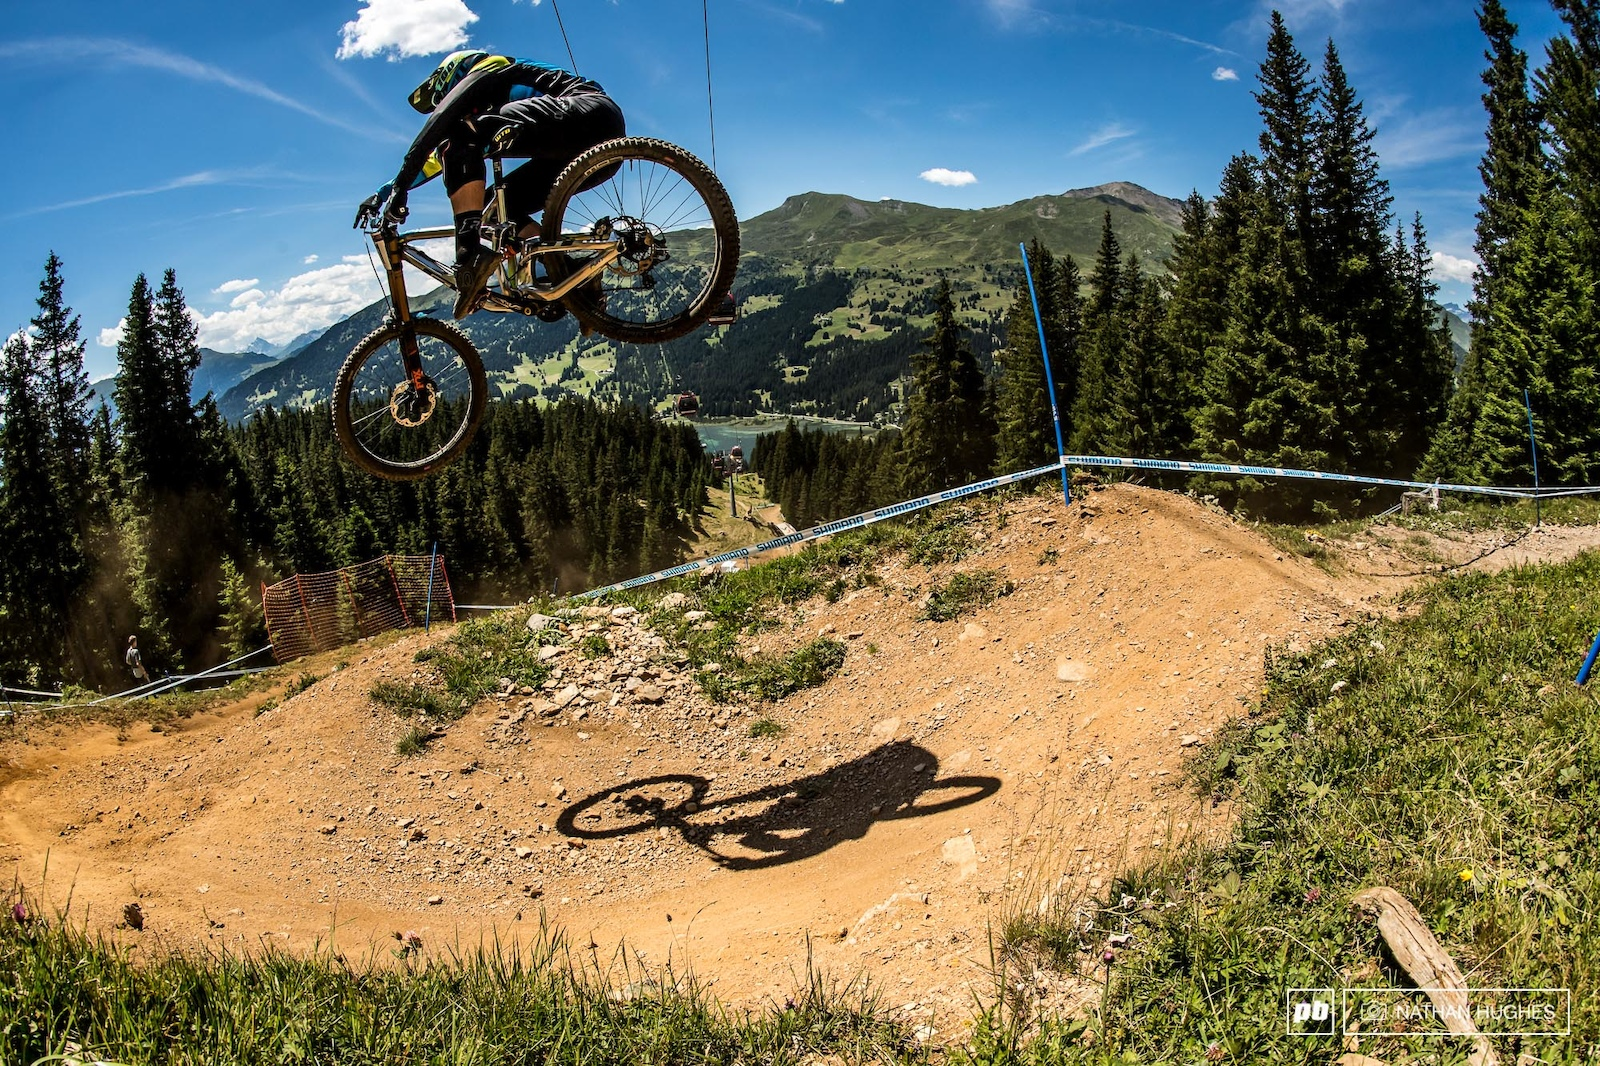 Speed and style at the world cup is possible friends. Just ask Wyn Masters.